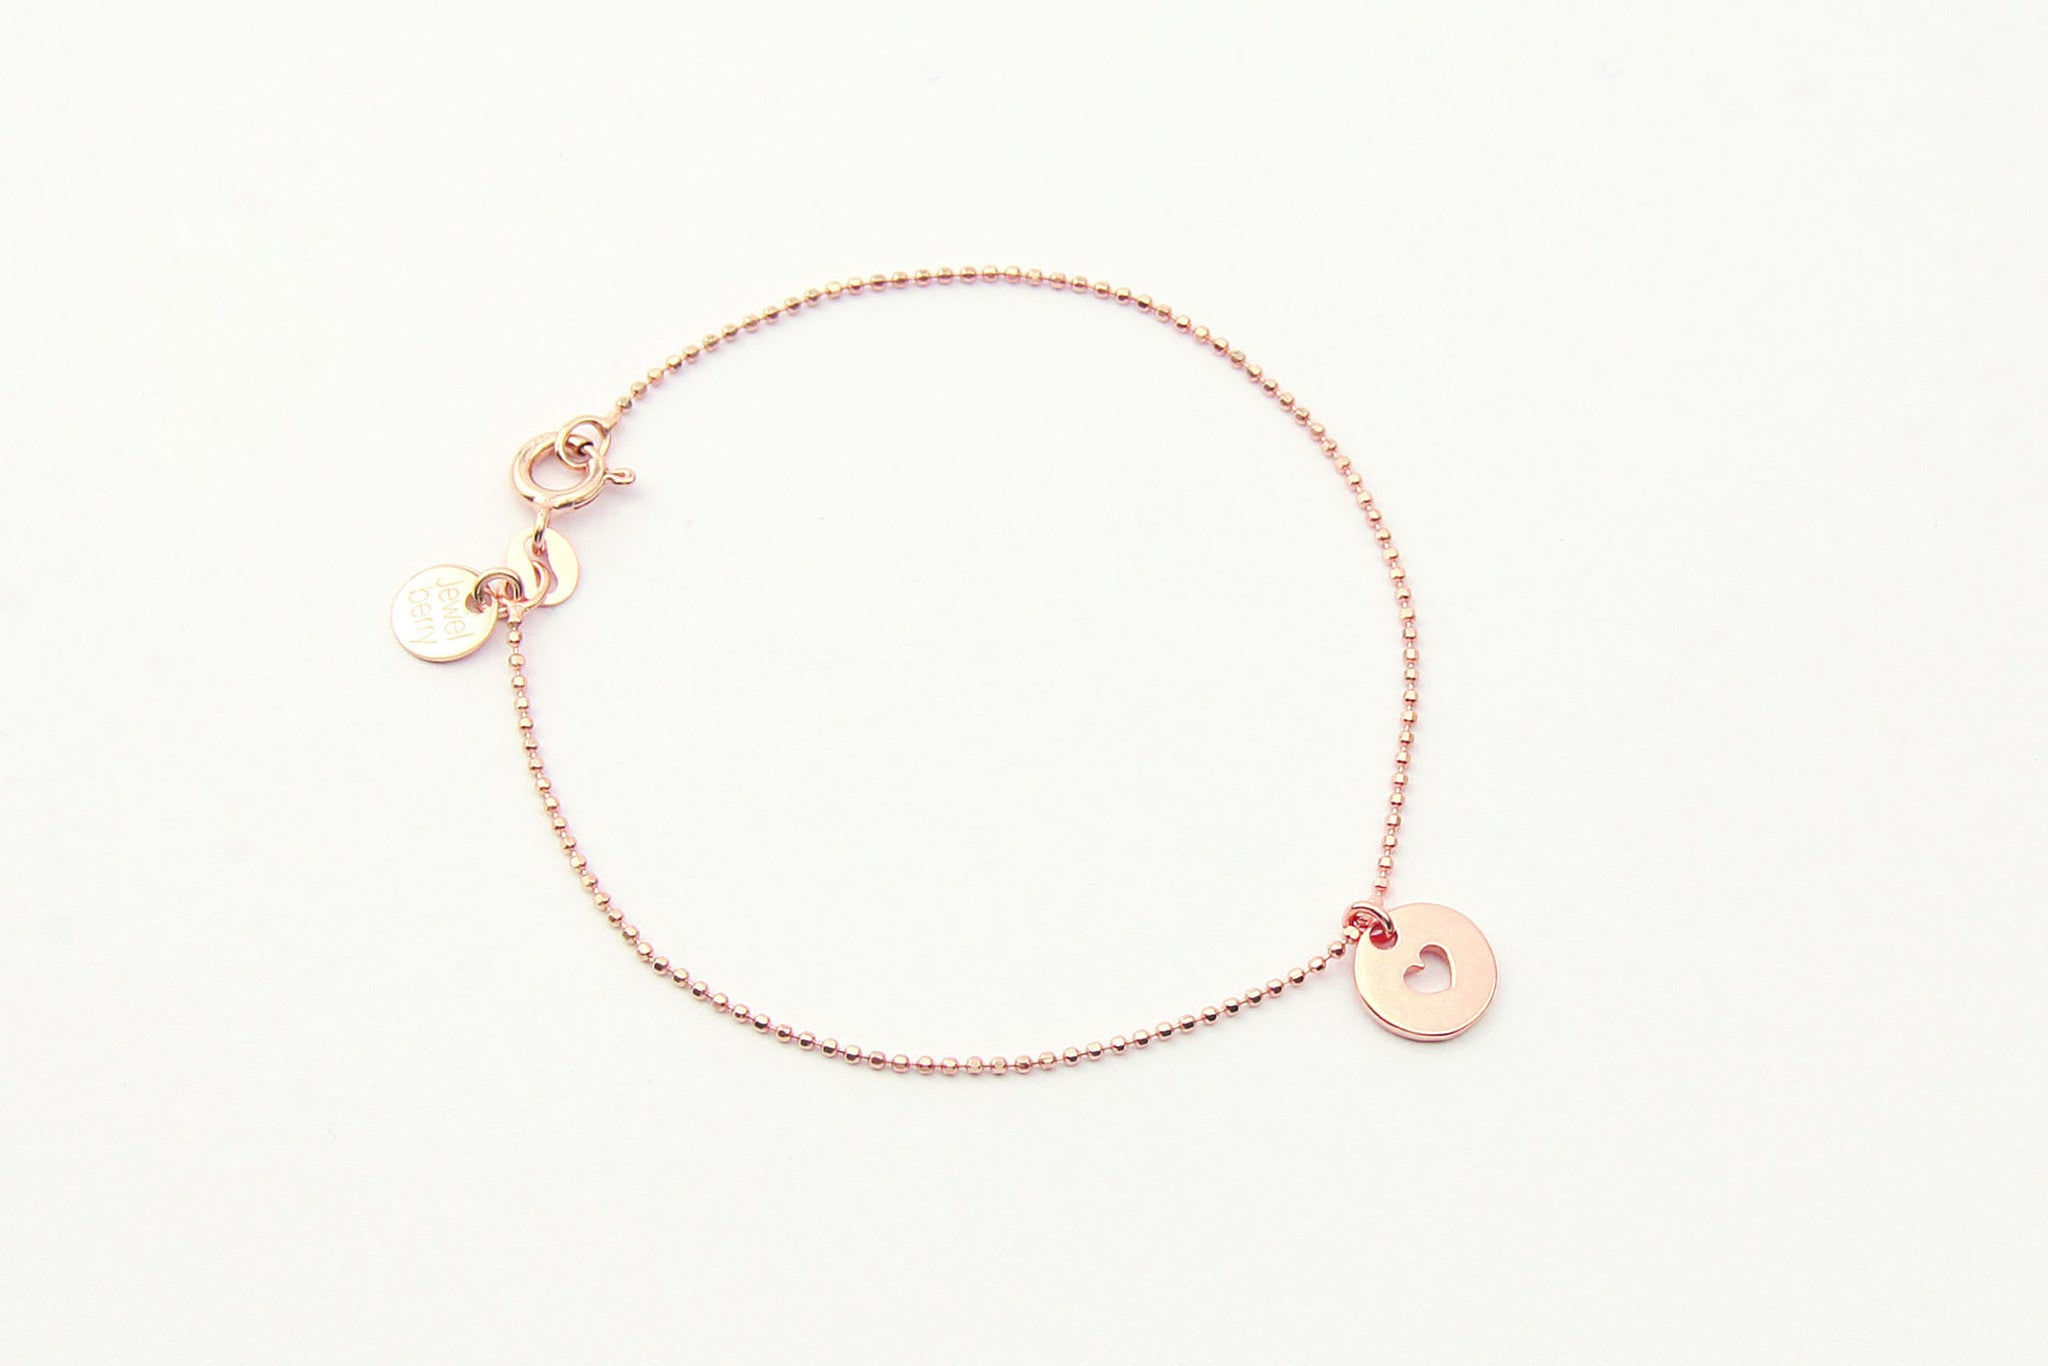 jewelberry armband bracelet love token rose gold plated sterling silver fine jewelry handmade with love fairtrade bead chain